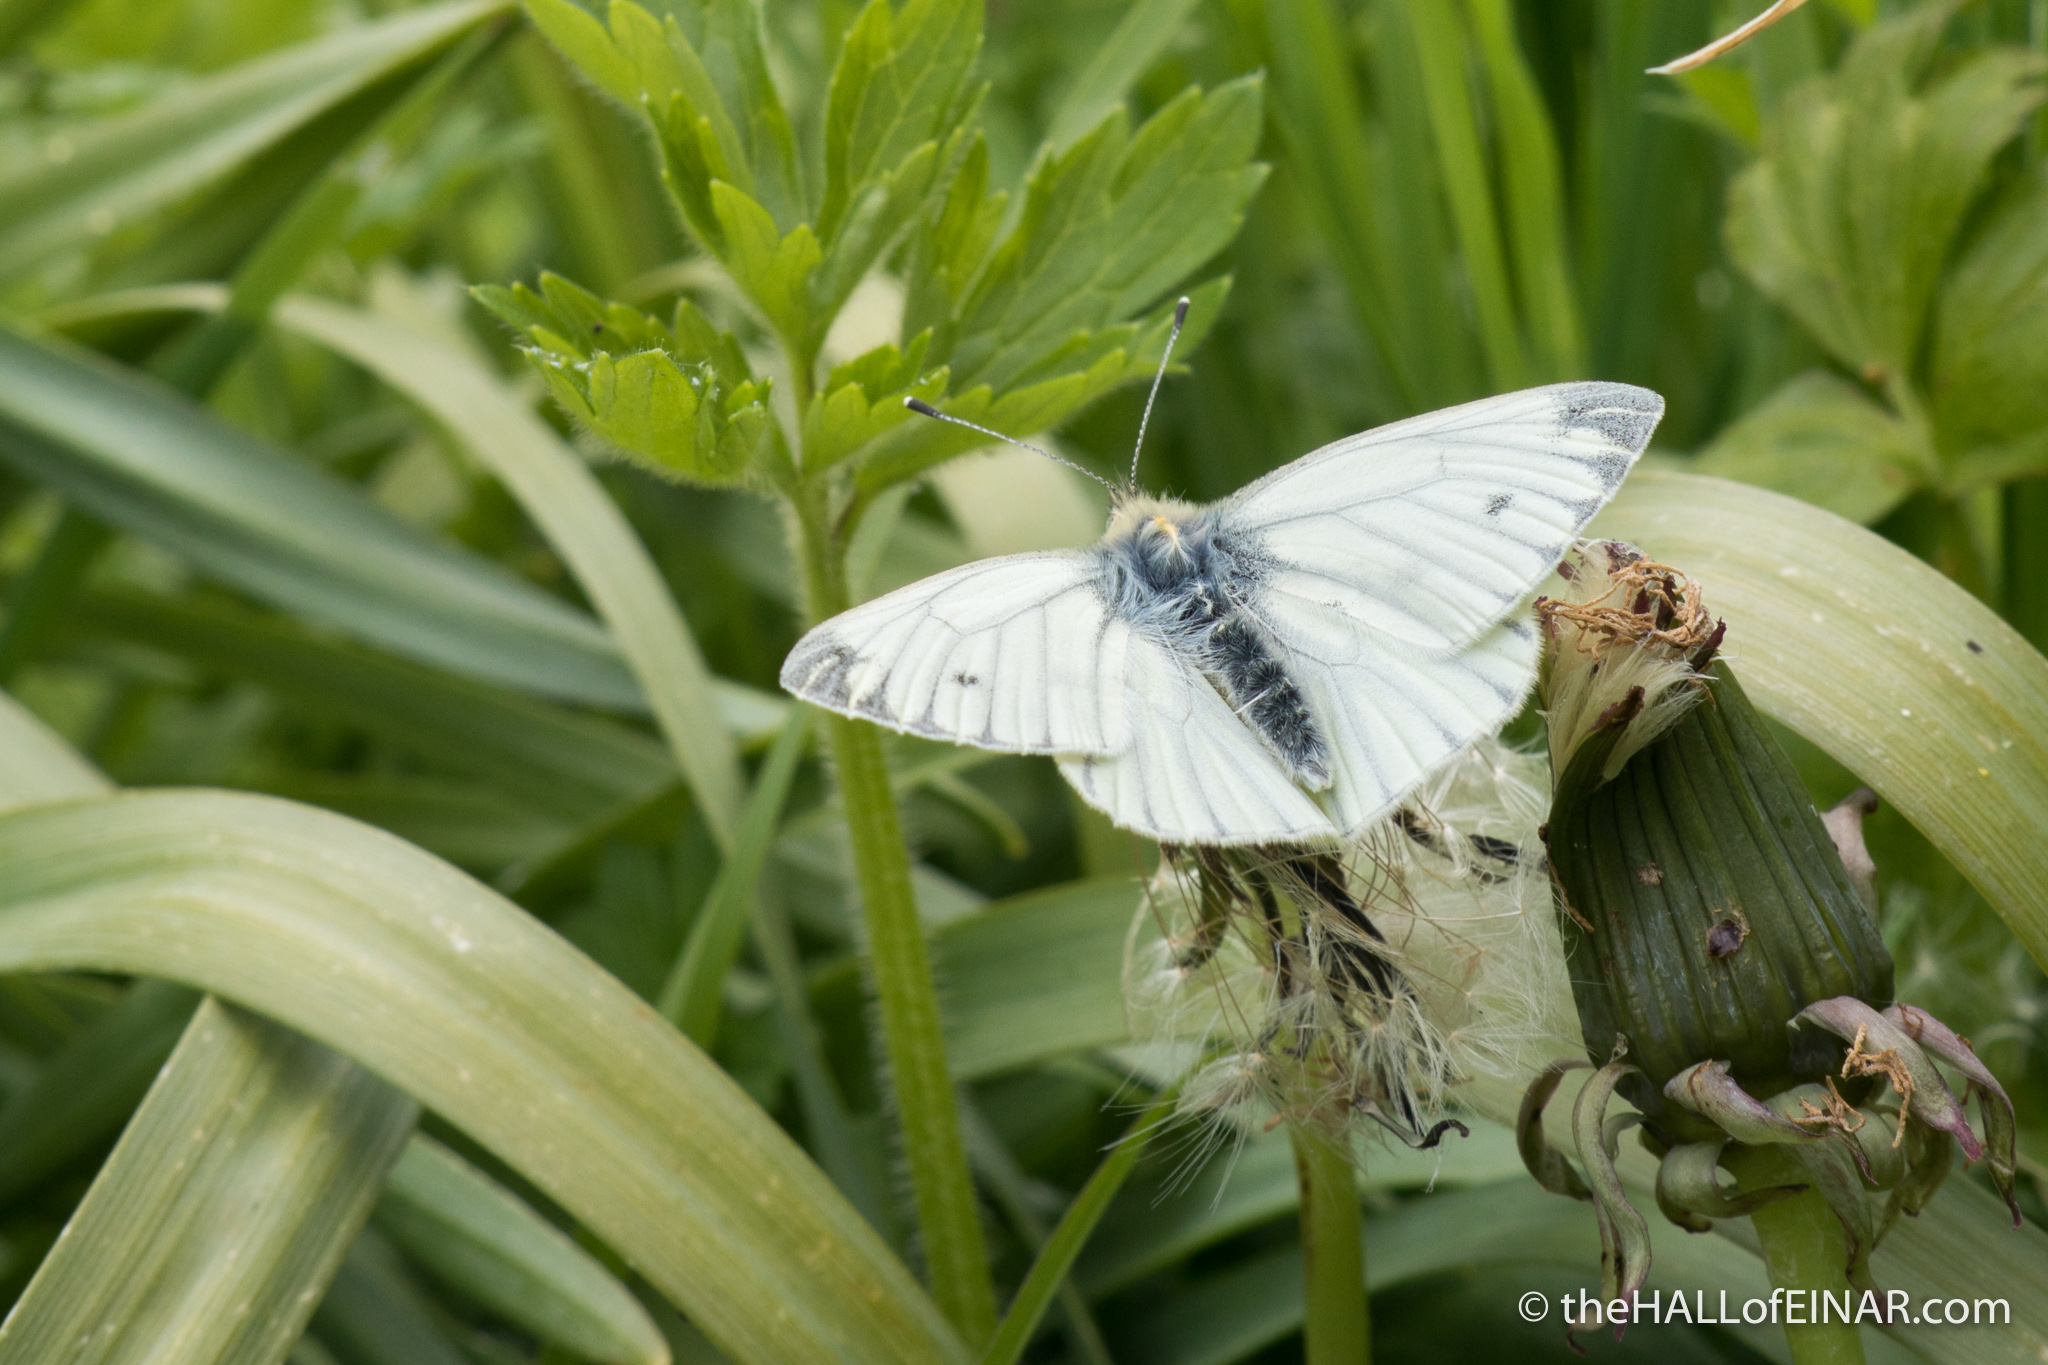 Green Veined White Butterfly - photograph (c) David Bailey (not the) - The Hall of Einar